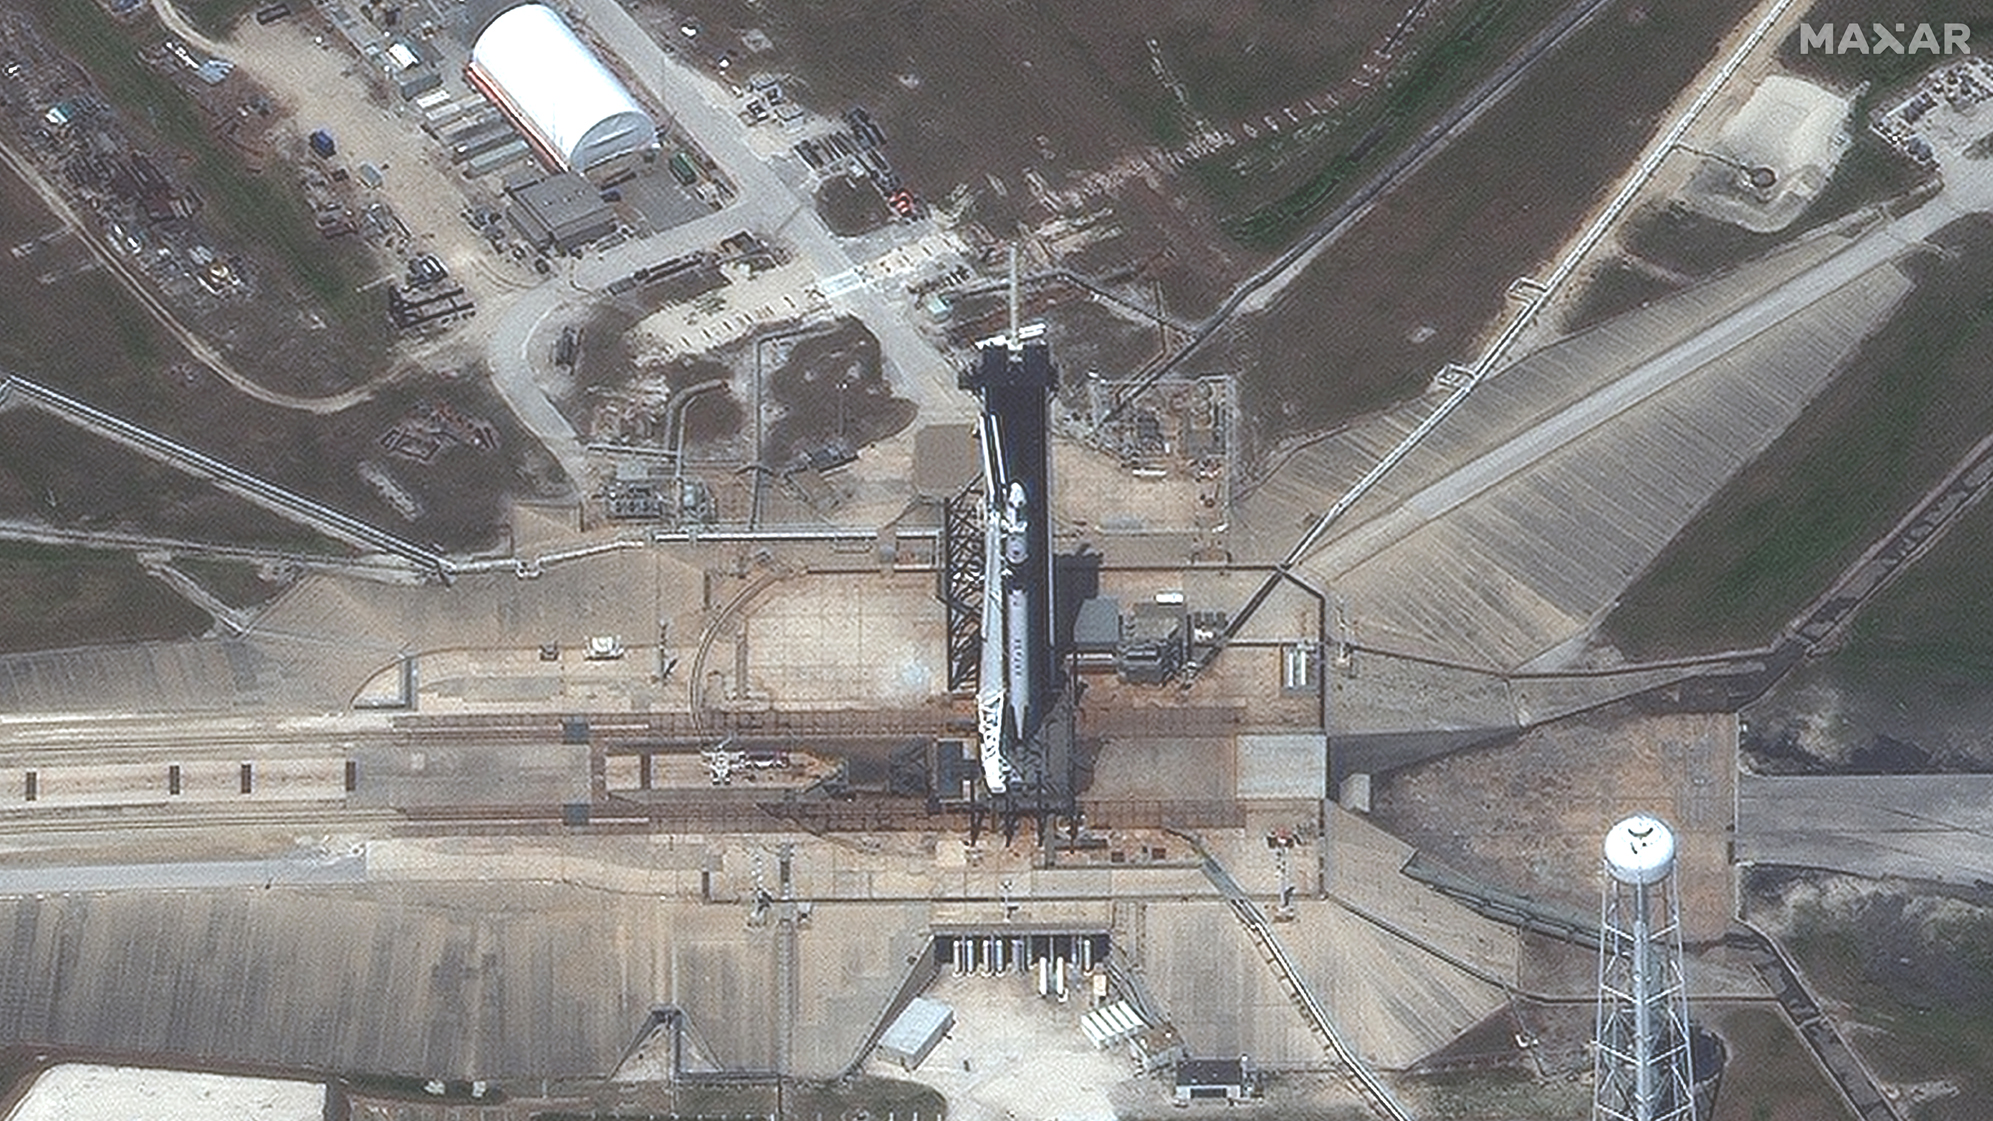 SpaceX's 1st astronaut mission is launching from a truly historic NASA pad